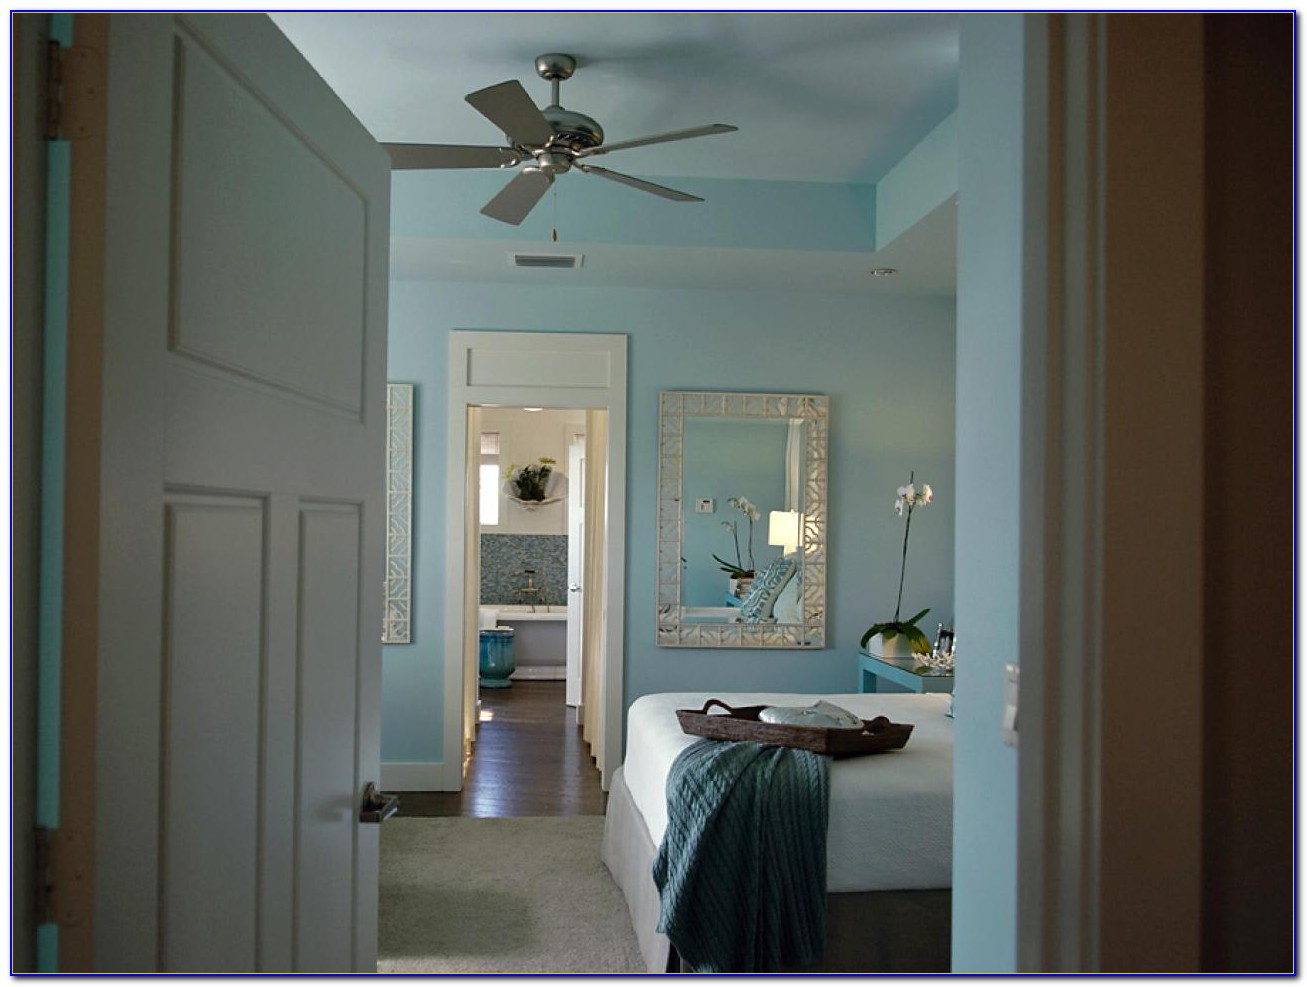 Best Quiet Ceiling Fans For Bedroom